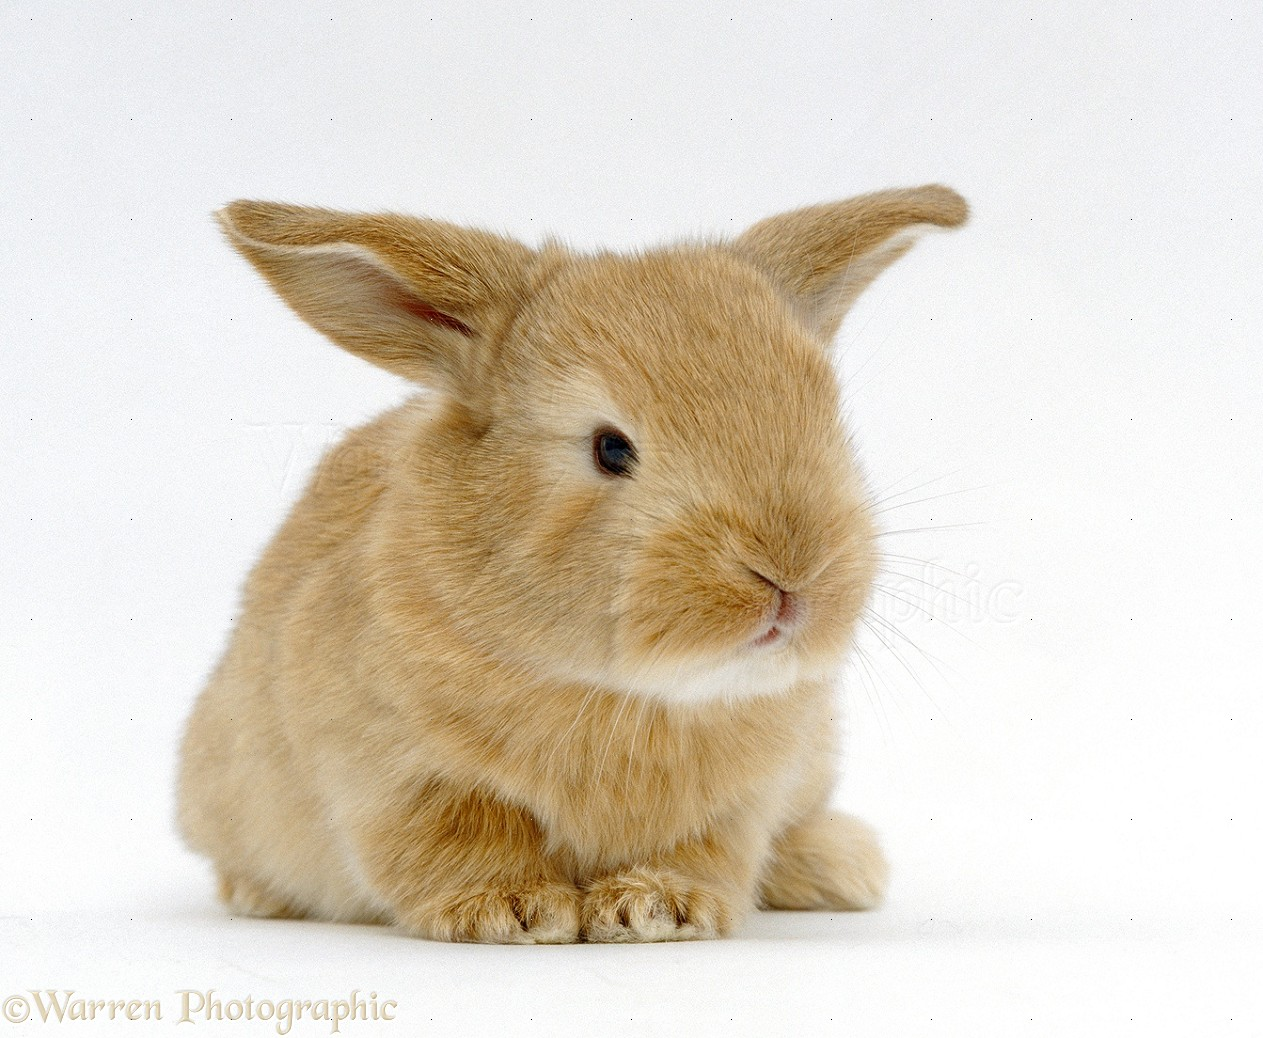 Baby lop eared rabbit - photo#9